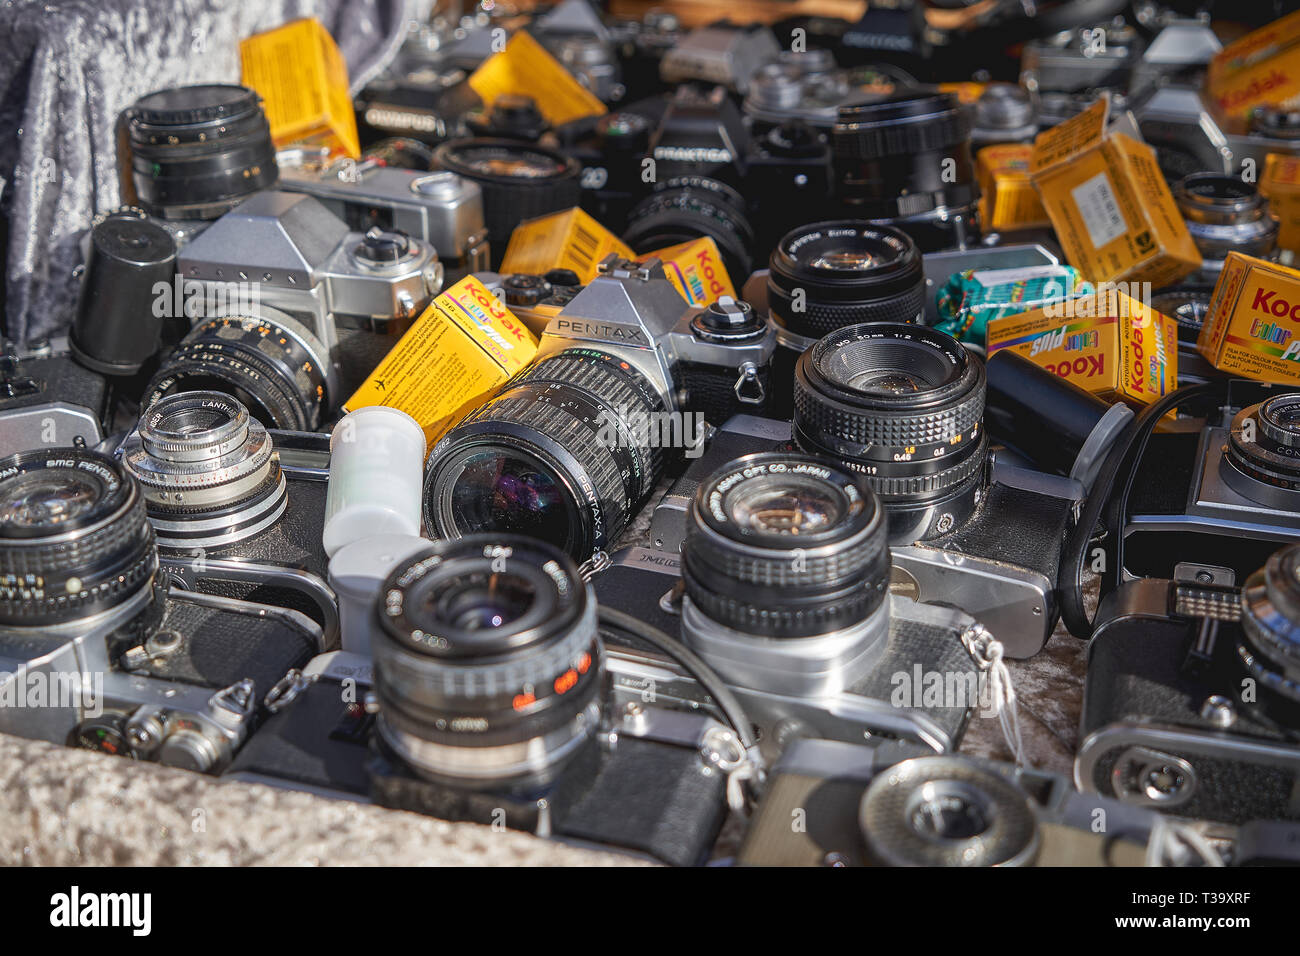 London, UK - November, 2018. Old Vintage cameras and lenses on sale in a stall in Portobello Road Market, the largest antiques market in the world. Stock Photo